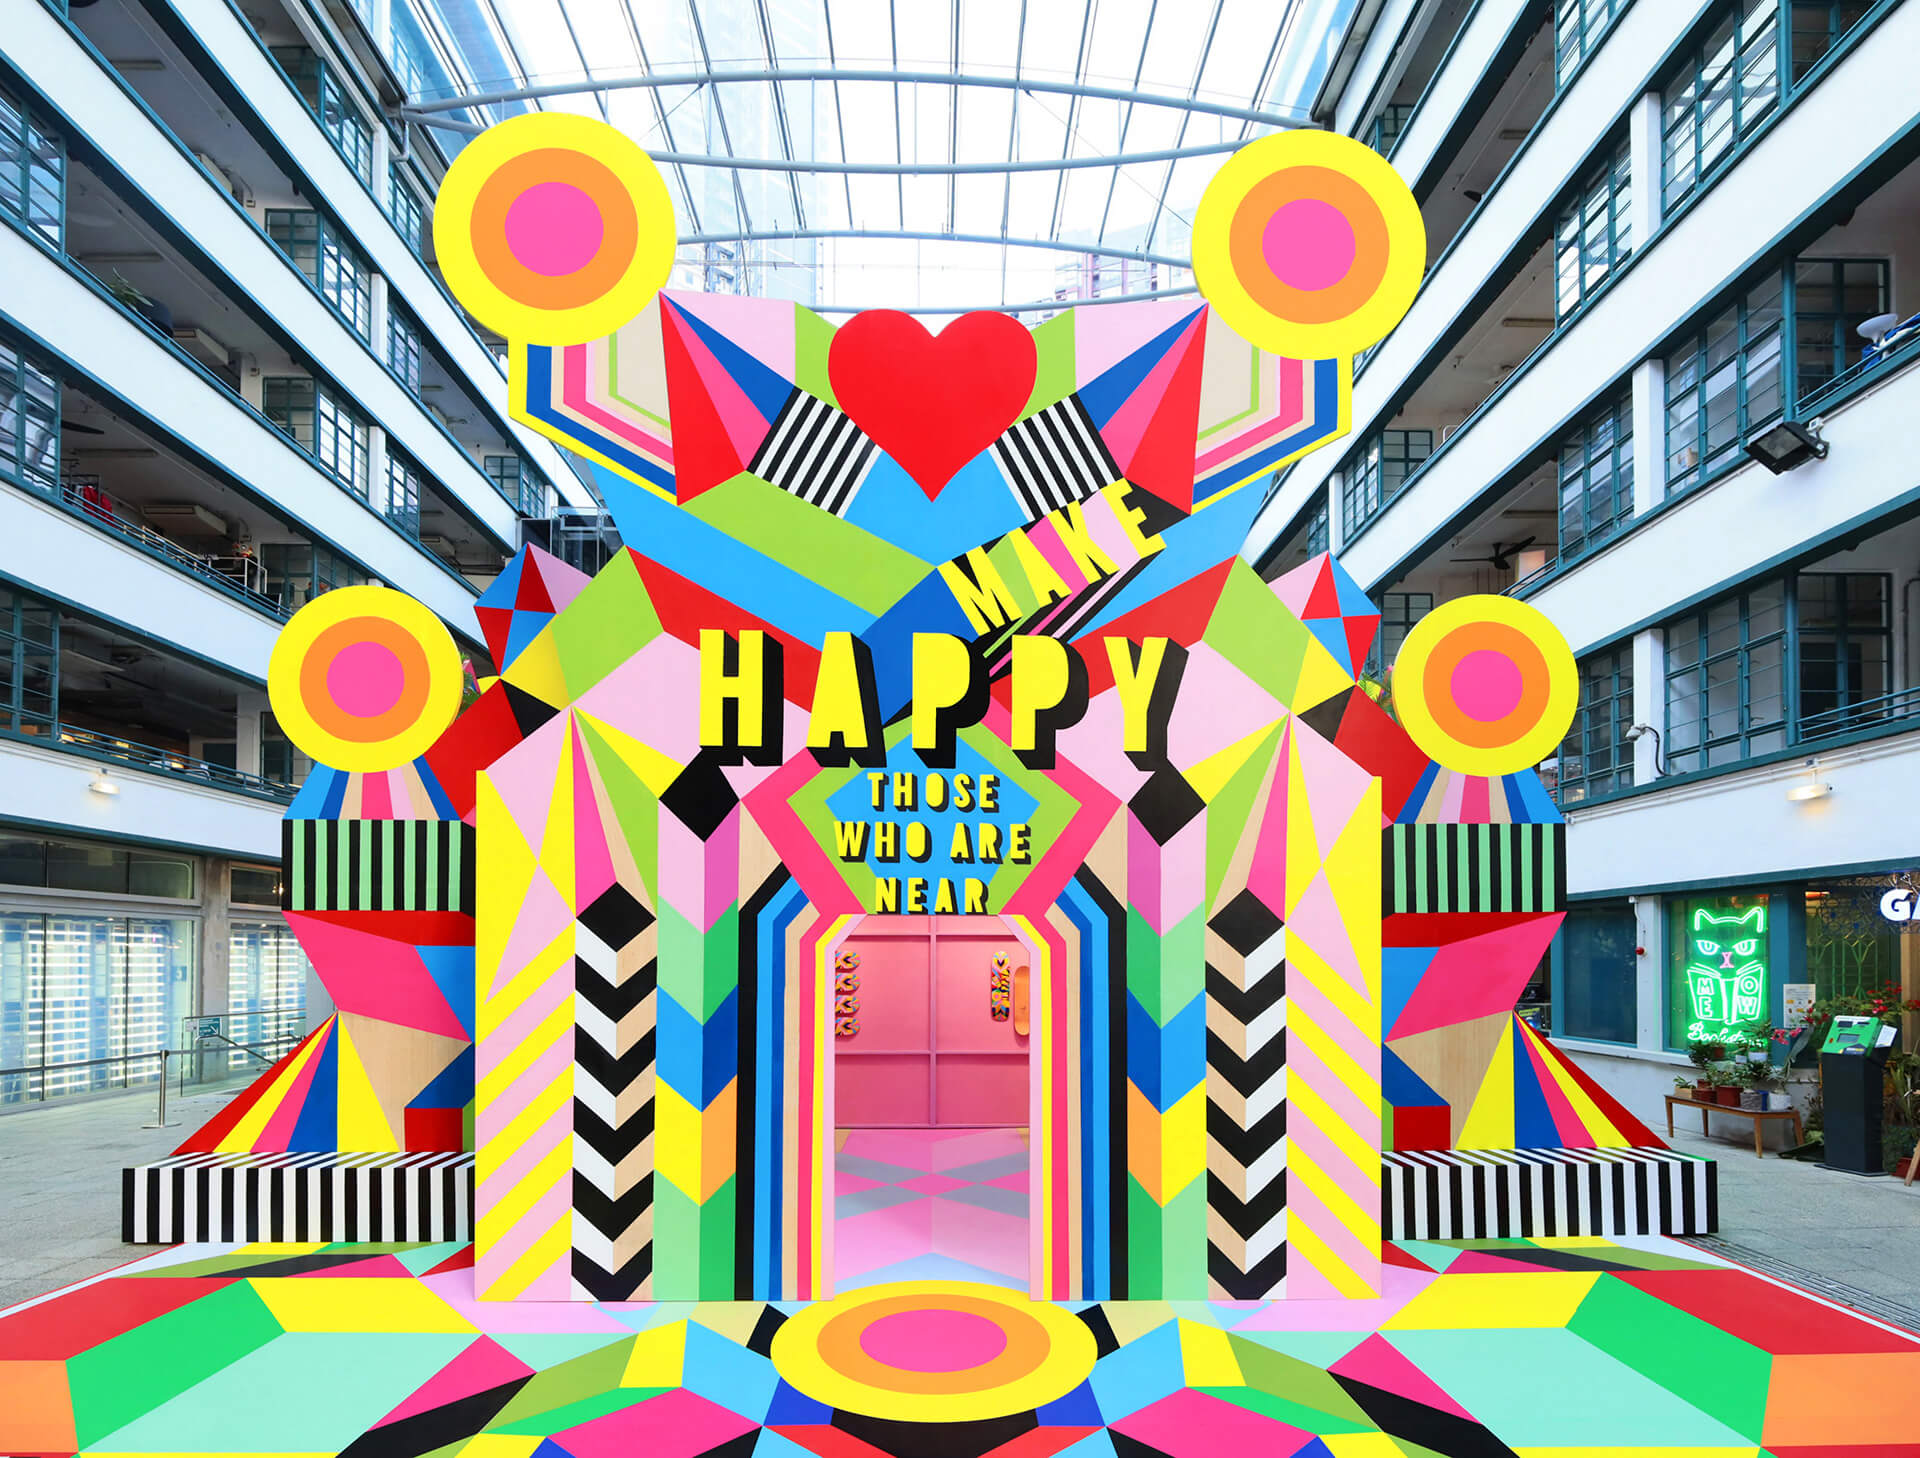 Morag Myerscough's large-scale installation Make Happy in Hong Kong, inspired from a Chinese proverb | Morag Myerscough | Women in Design 2020 + | STIRworld